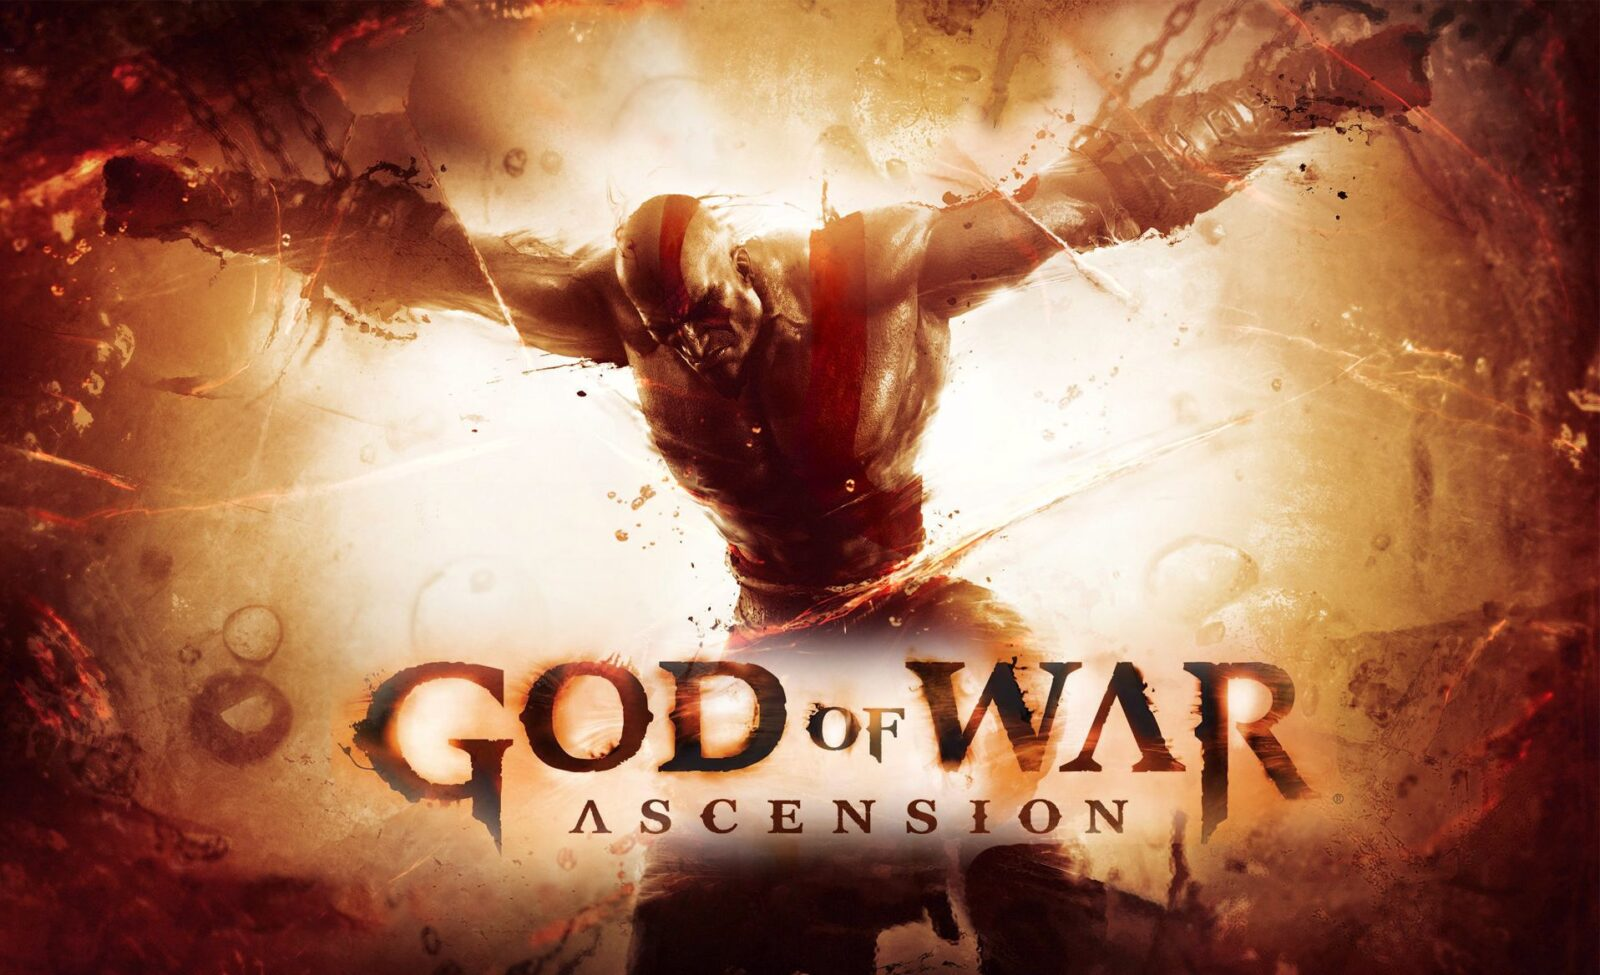 God-of-War-Ascension-Remake-Coming-to-PS4-Report-441213-2